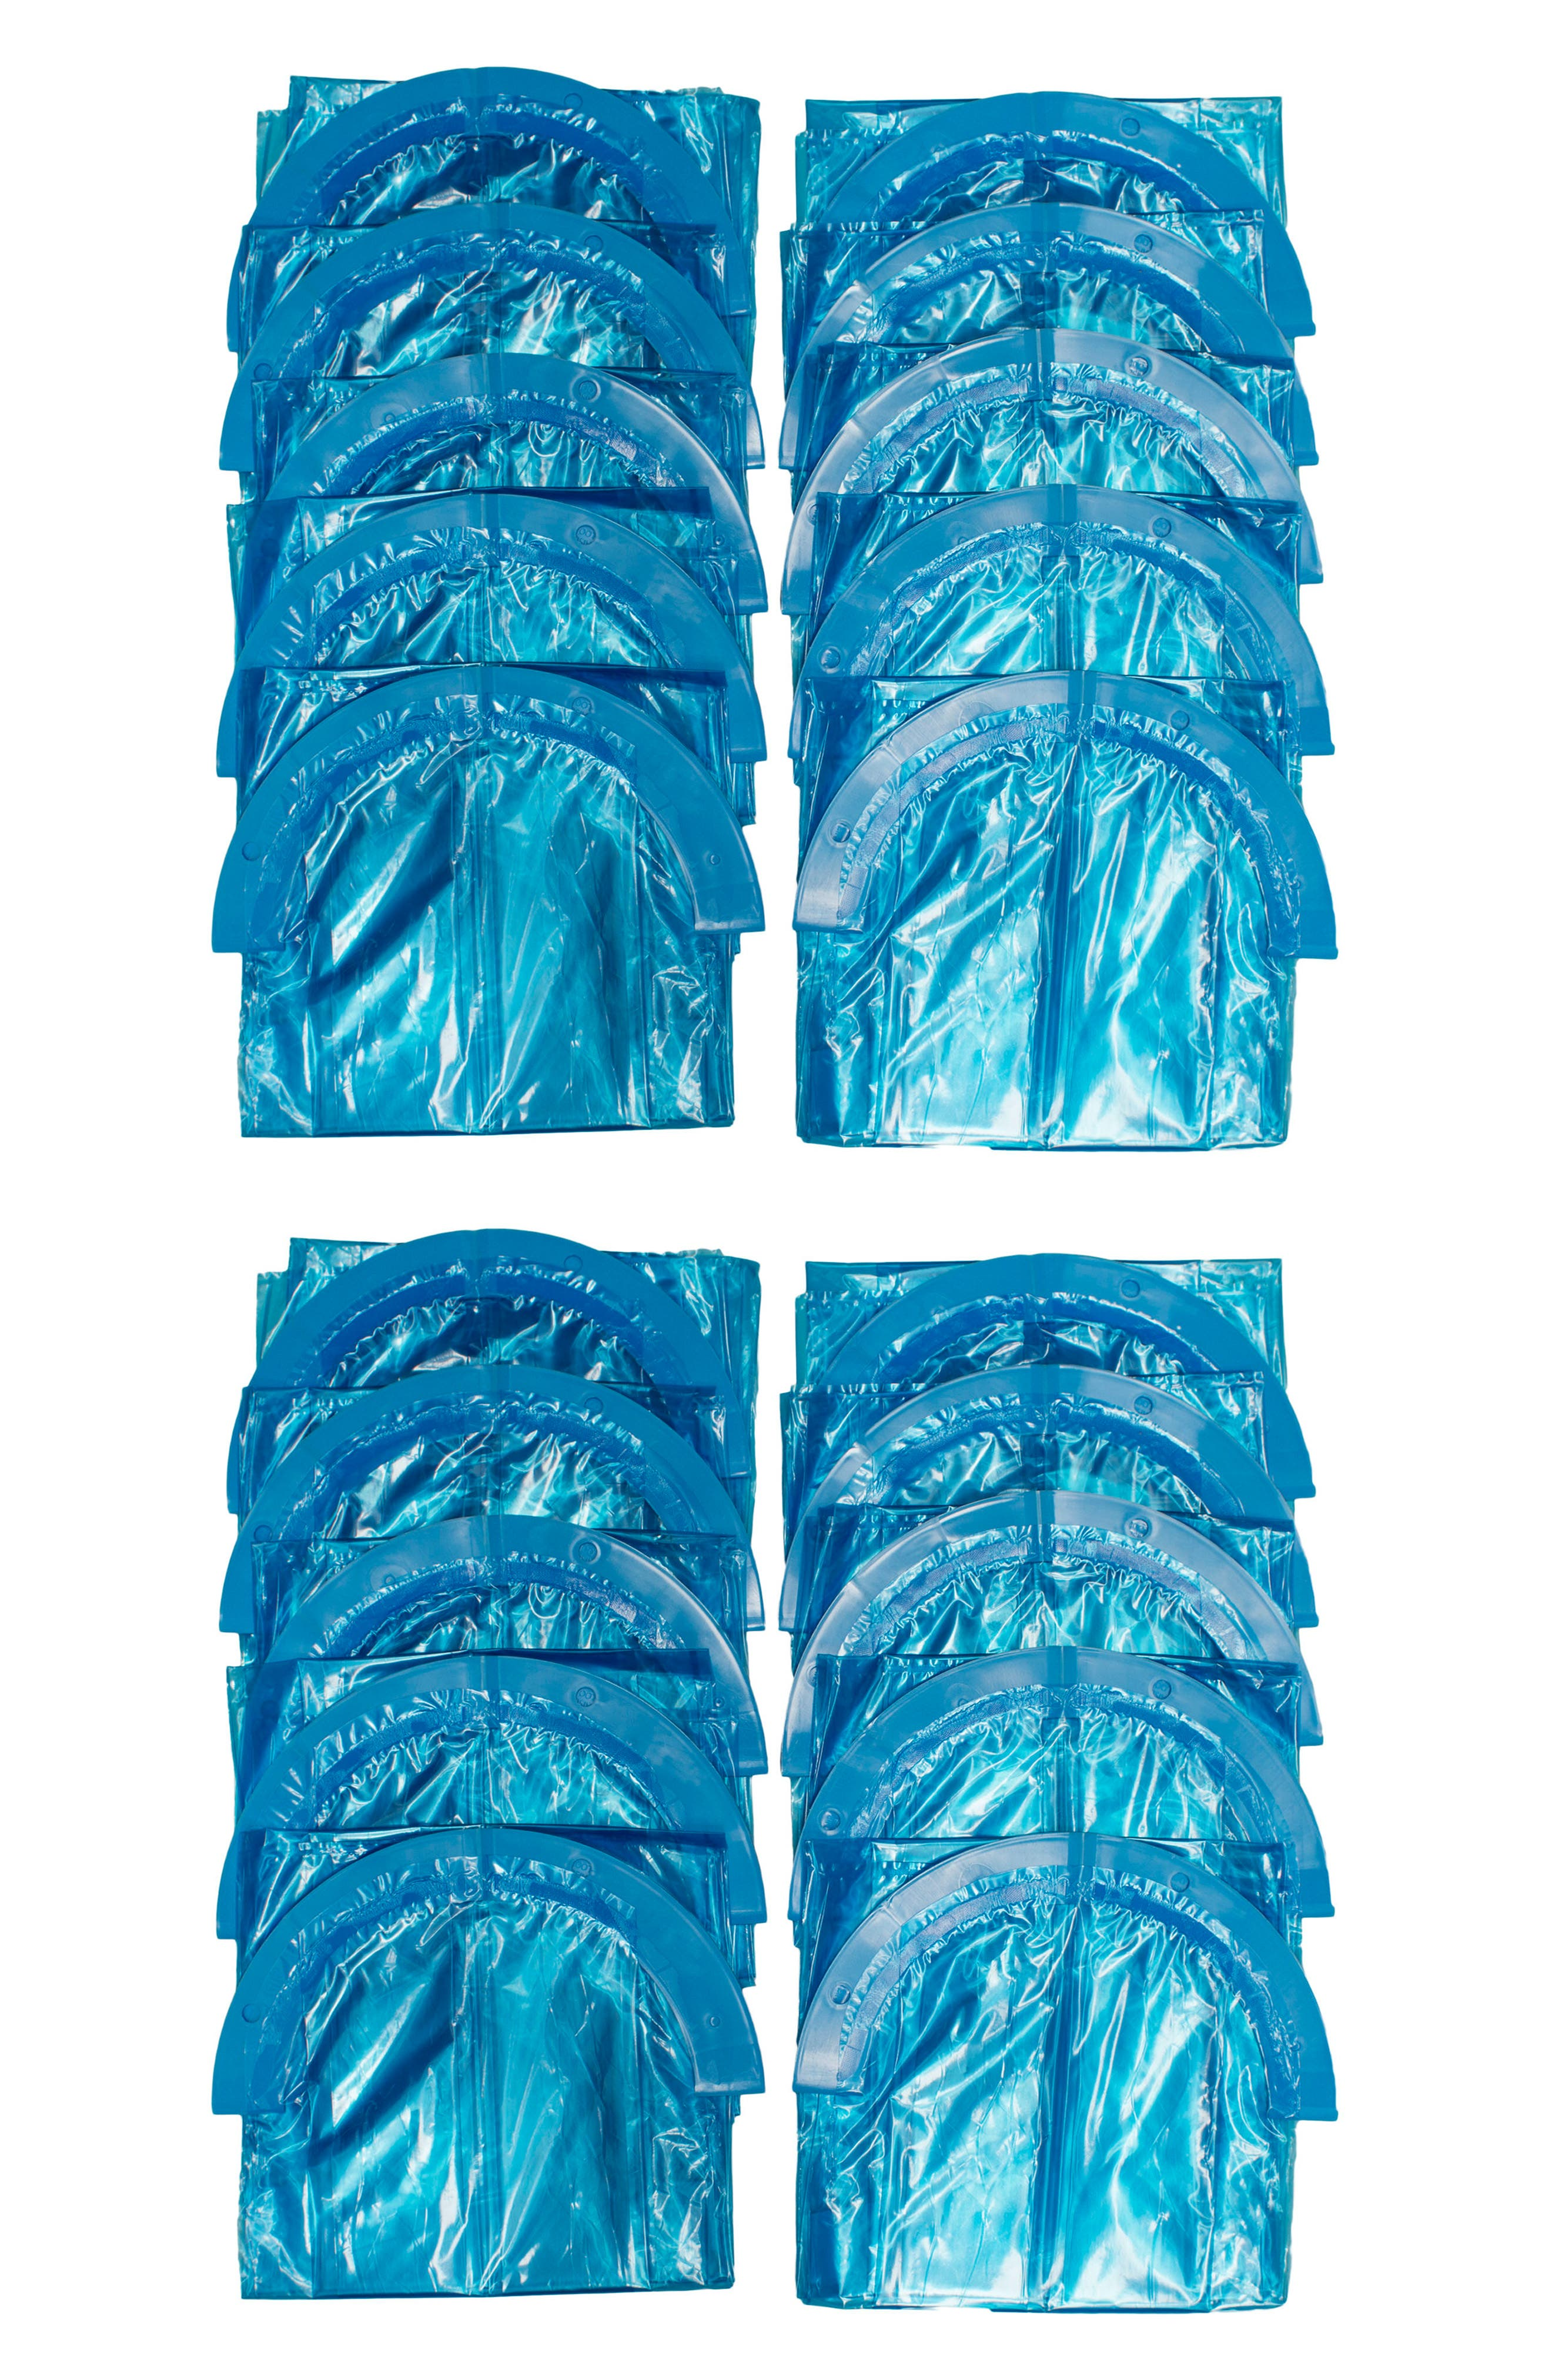 Main Image - Prince Lionheart Twist'r Diaper Disposal System Set of 20 Refill Bags